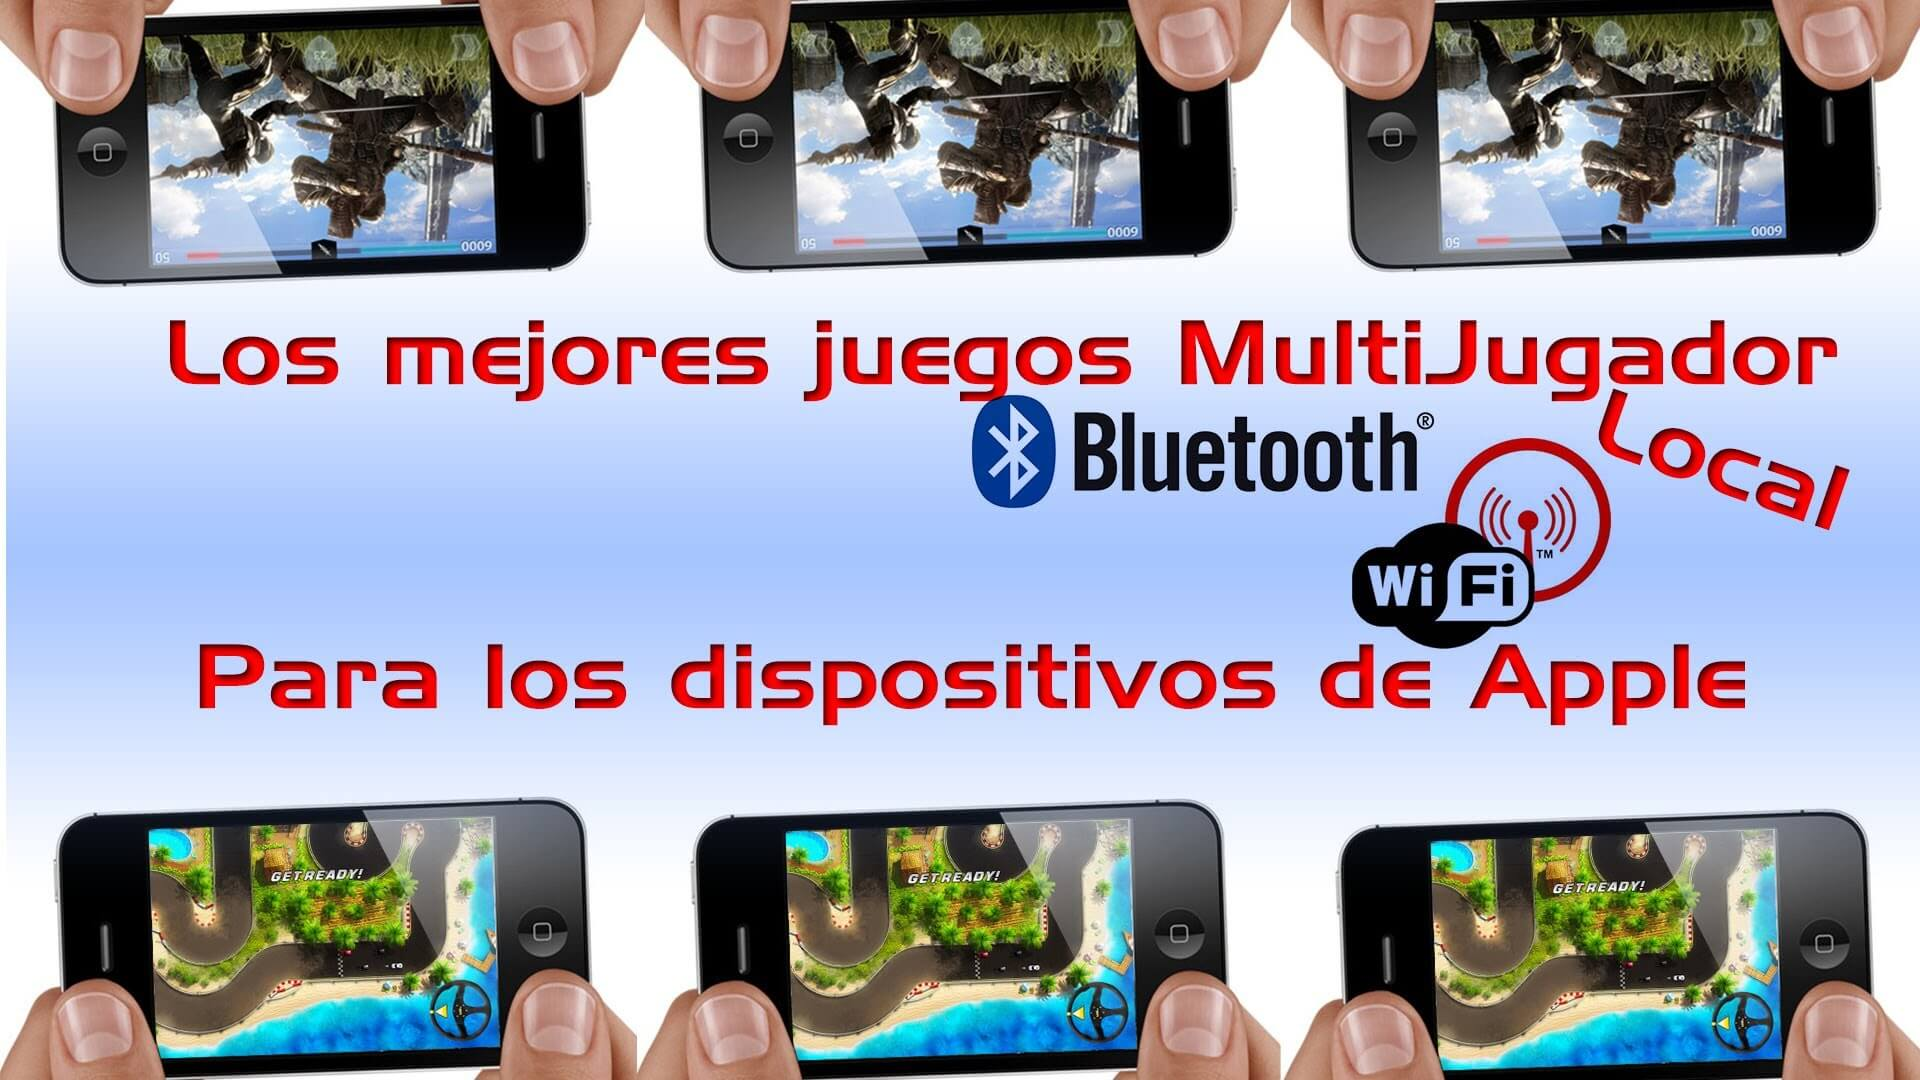 Multijugador Iphoneate Com